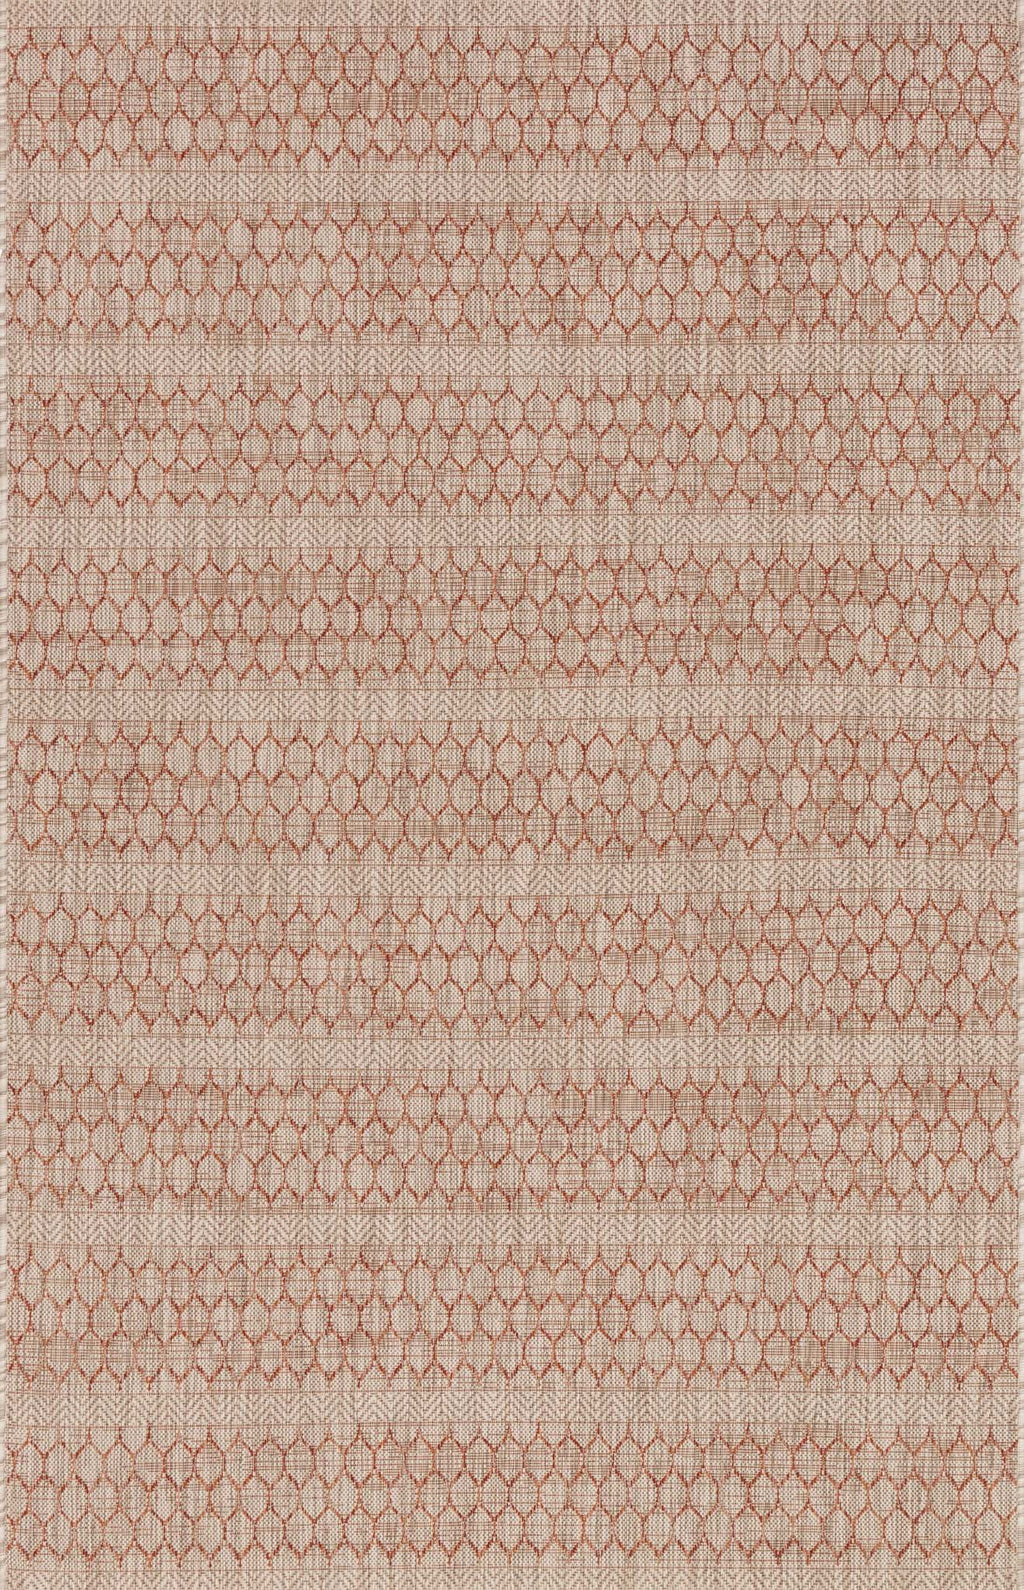 ISLE Collection Rug  in  BEIGE / RUST Beige Small Power-Loomed Polypropylene